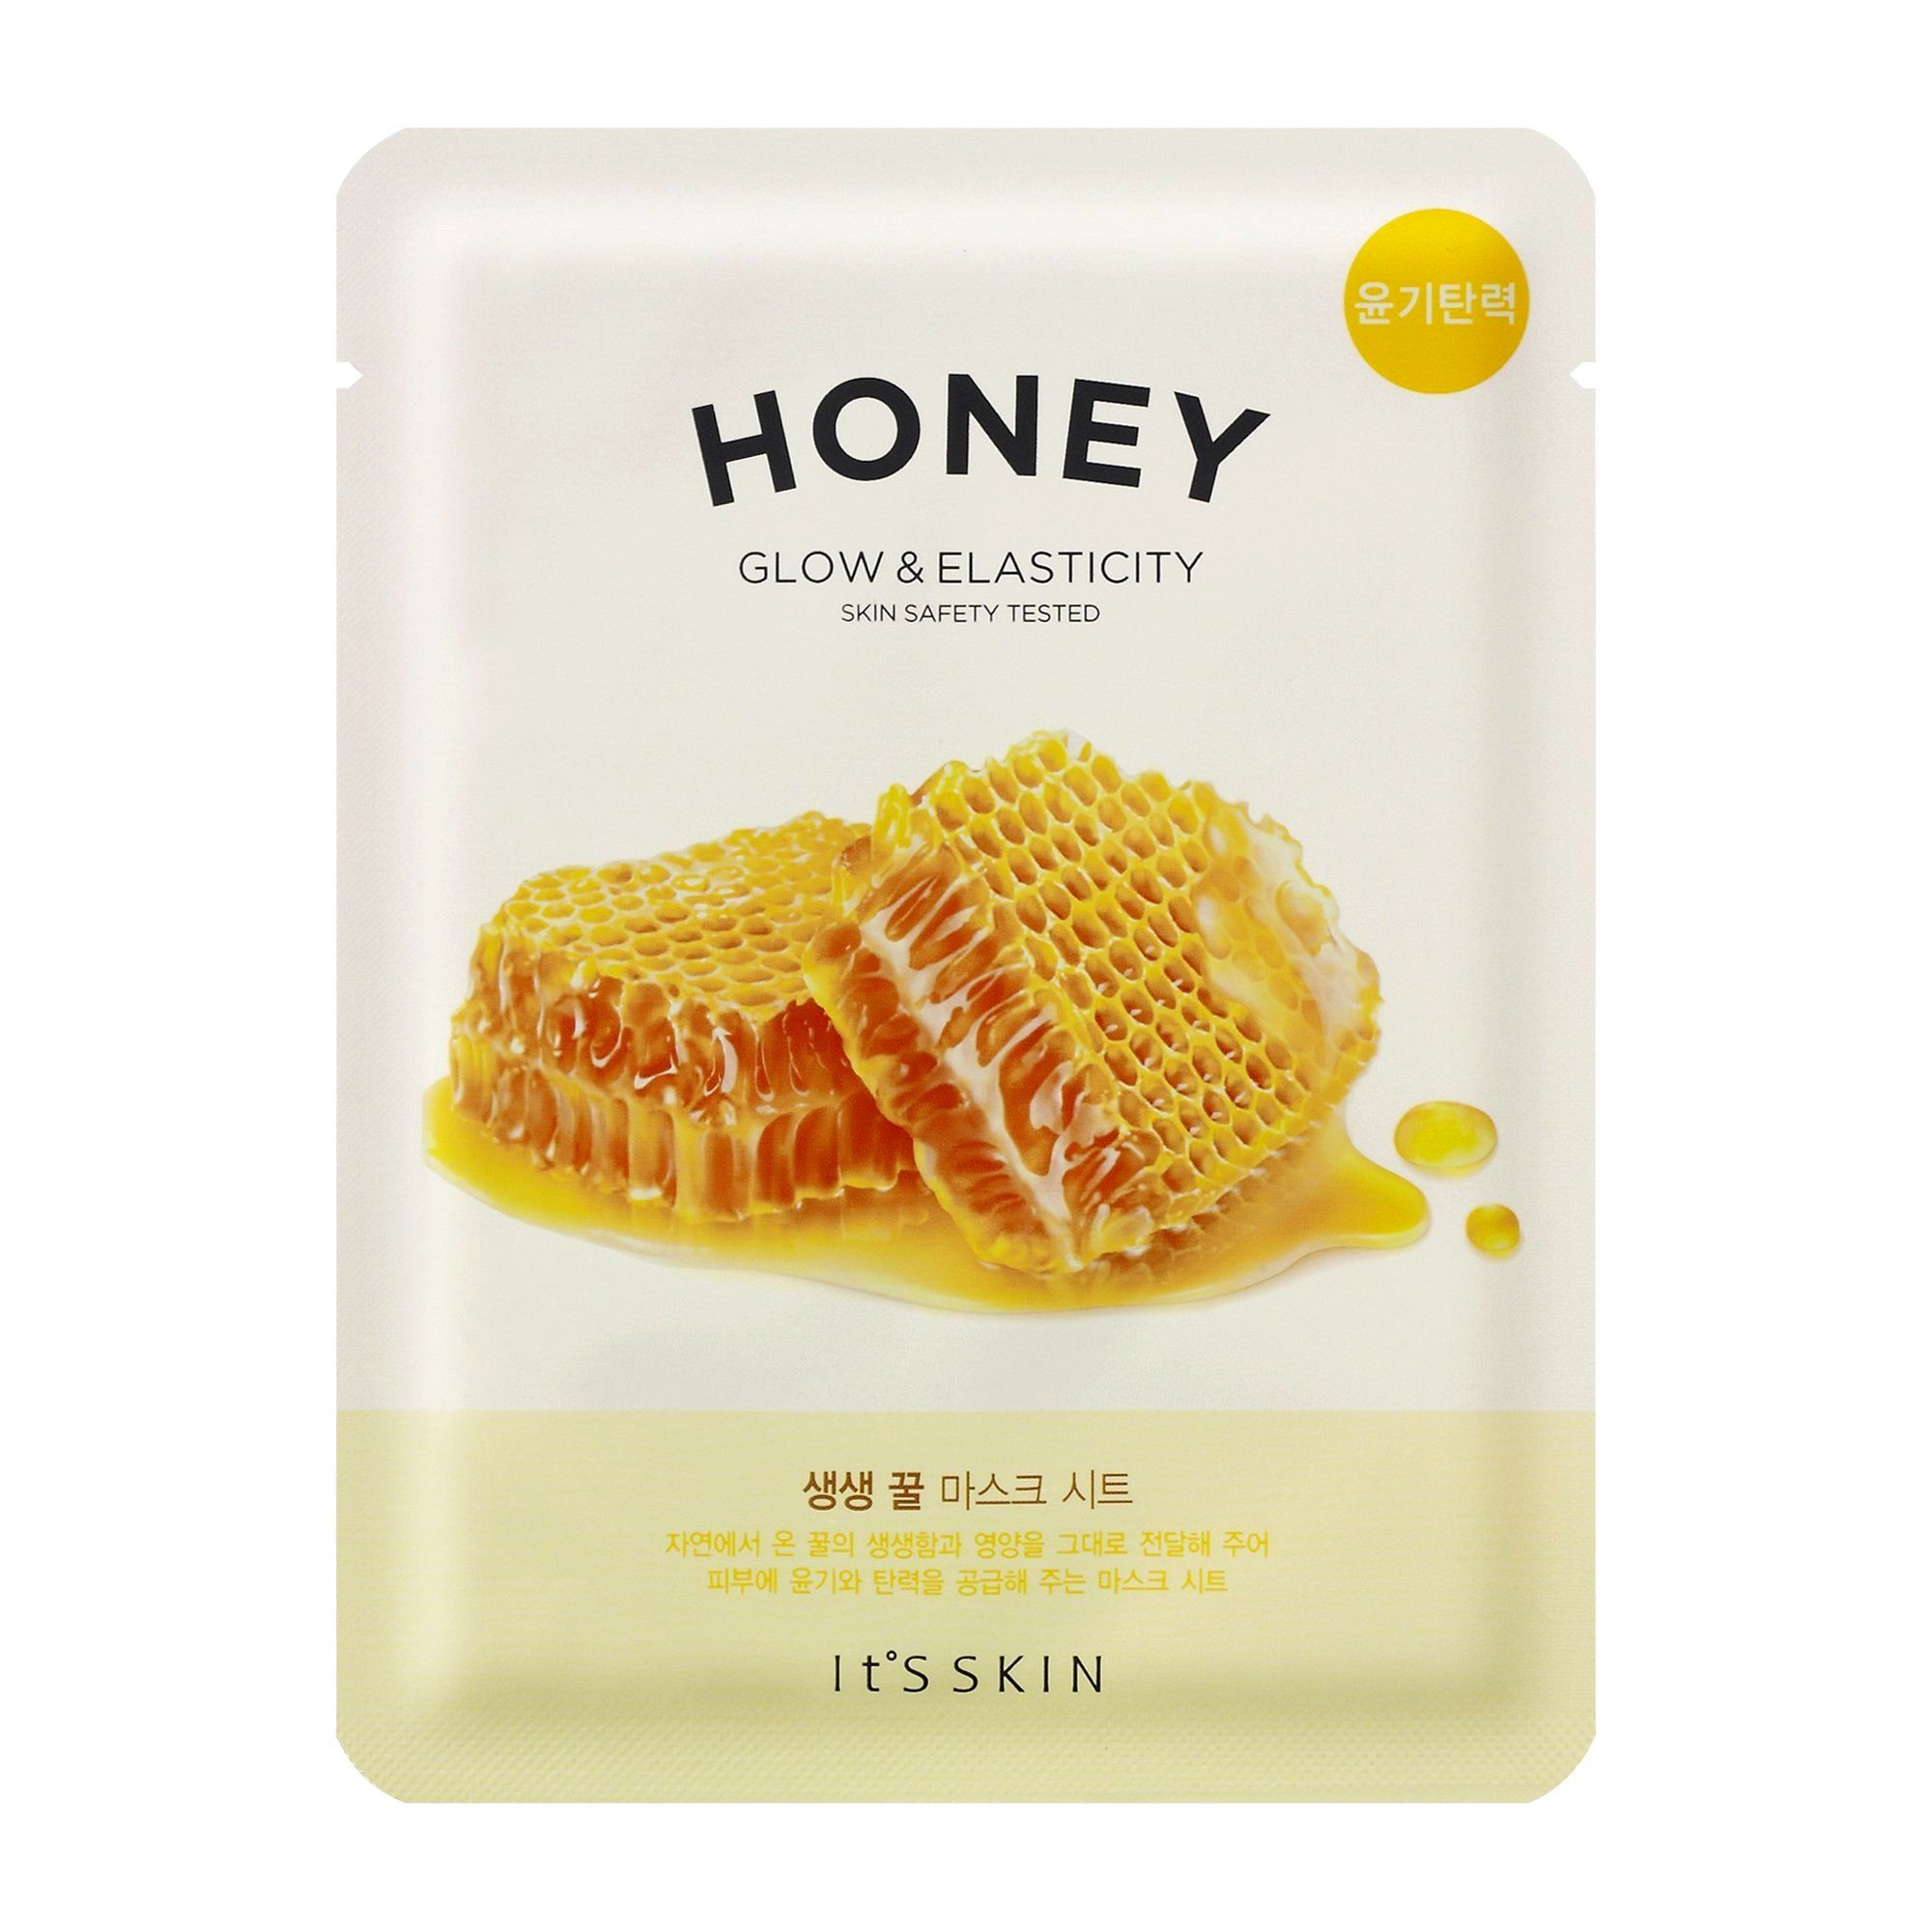 Health & Beauty > Personal Care > Cosmetics > Skin Care > Compressed Skin Care Mask Sheets - The Fresh Mask Sheet Honey Maska W Płachcie